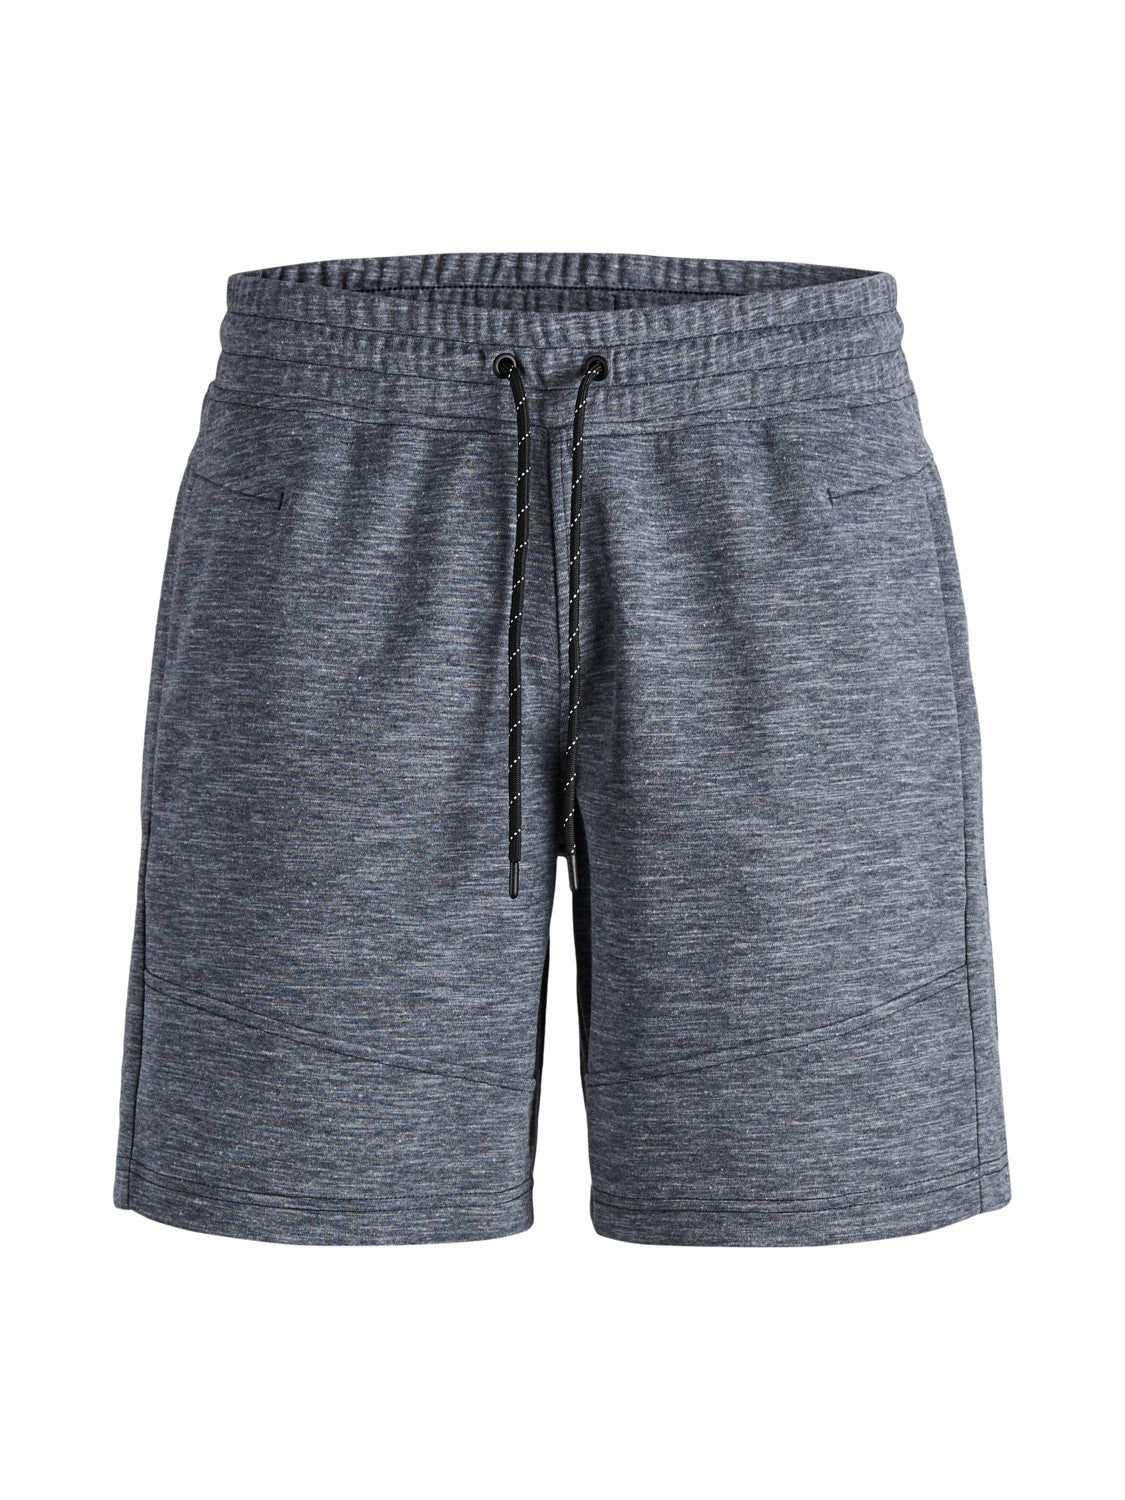 Short de coton ouaté Jack & Jones Jjimel Sky captain